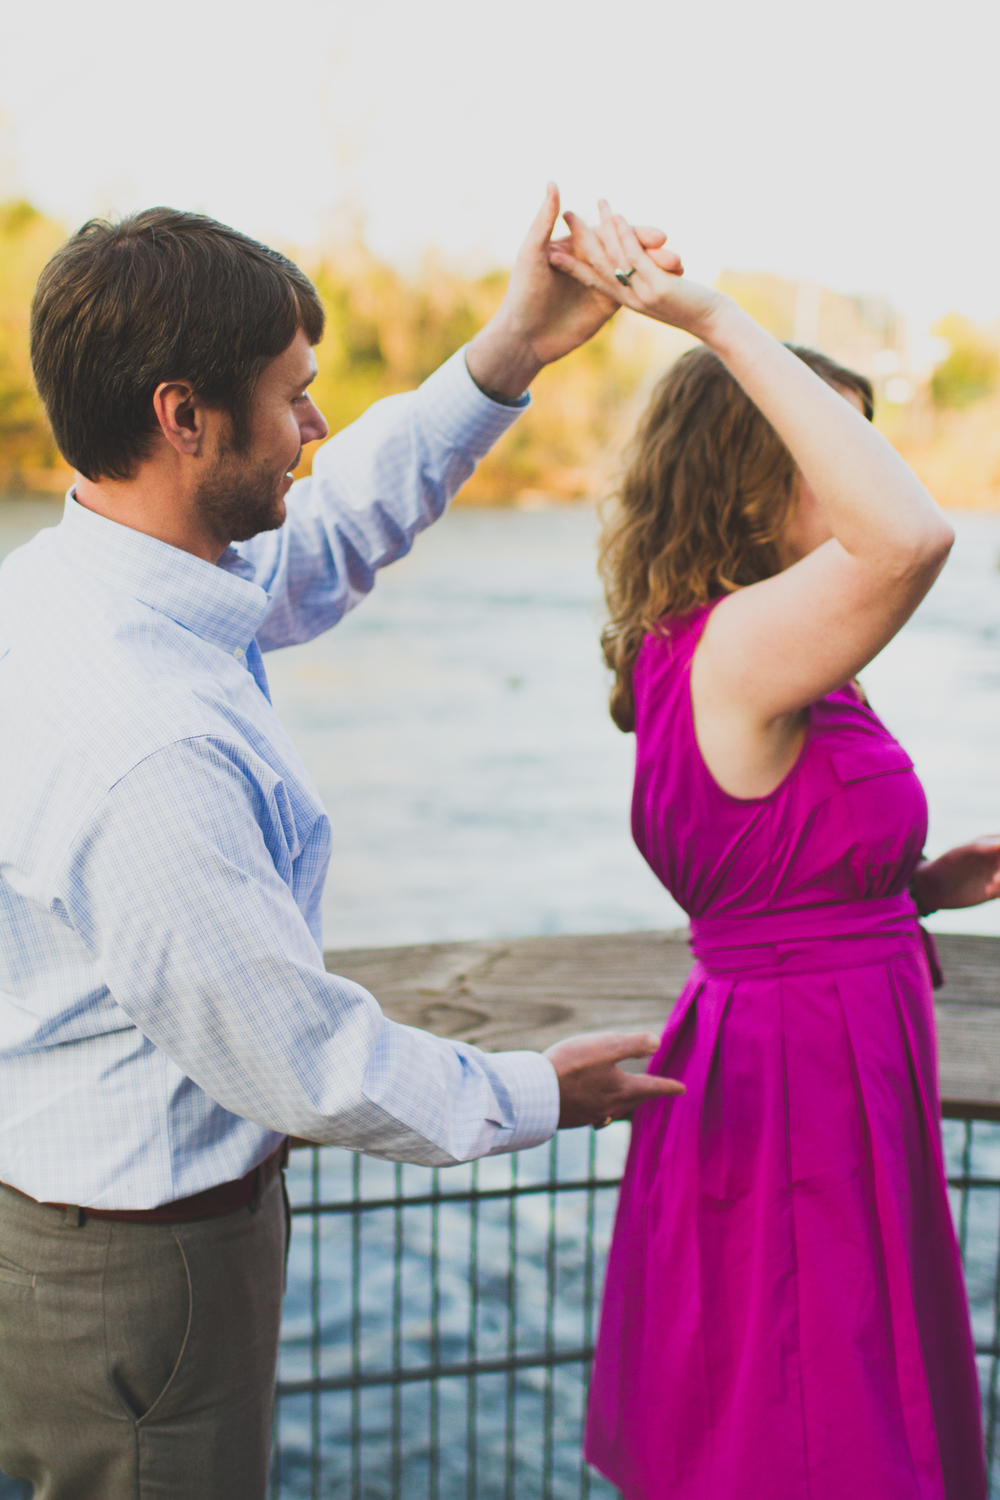 Dancing by the Riverwalk | Lorin Marie Photography